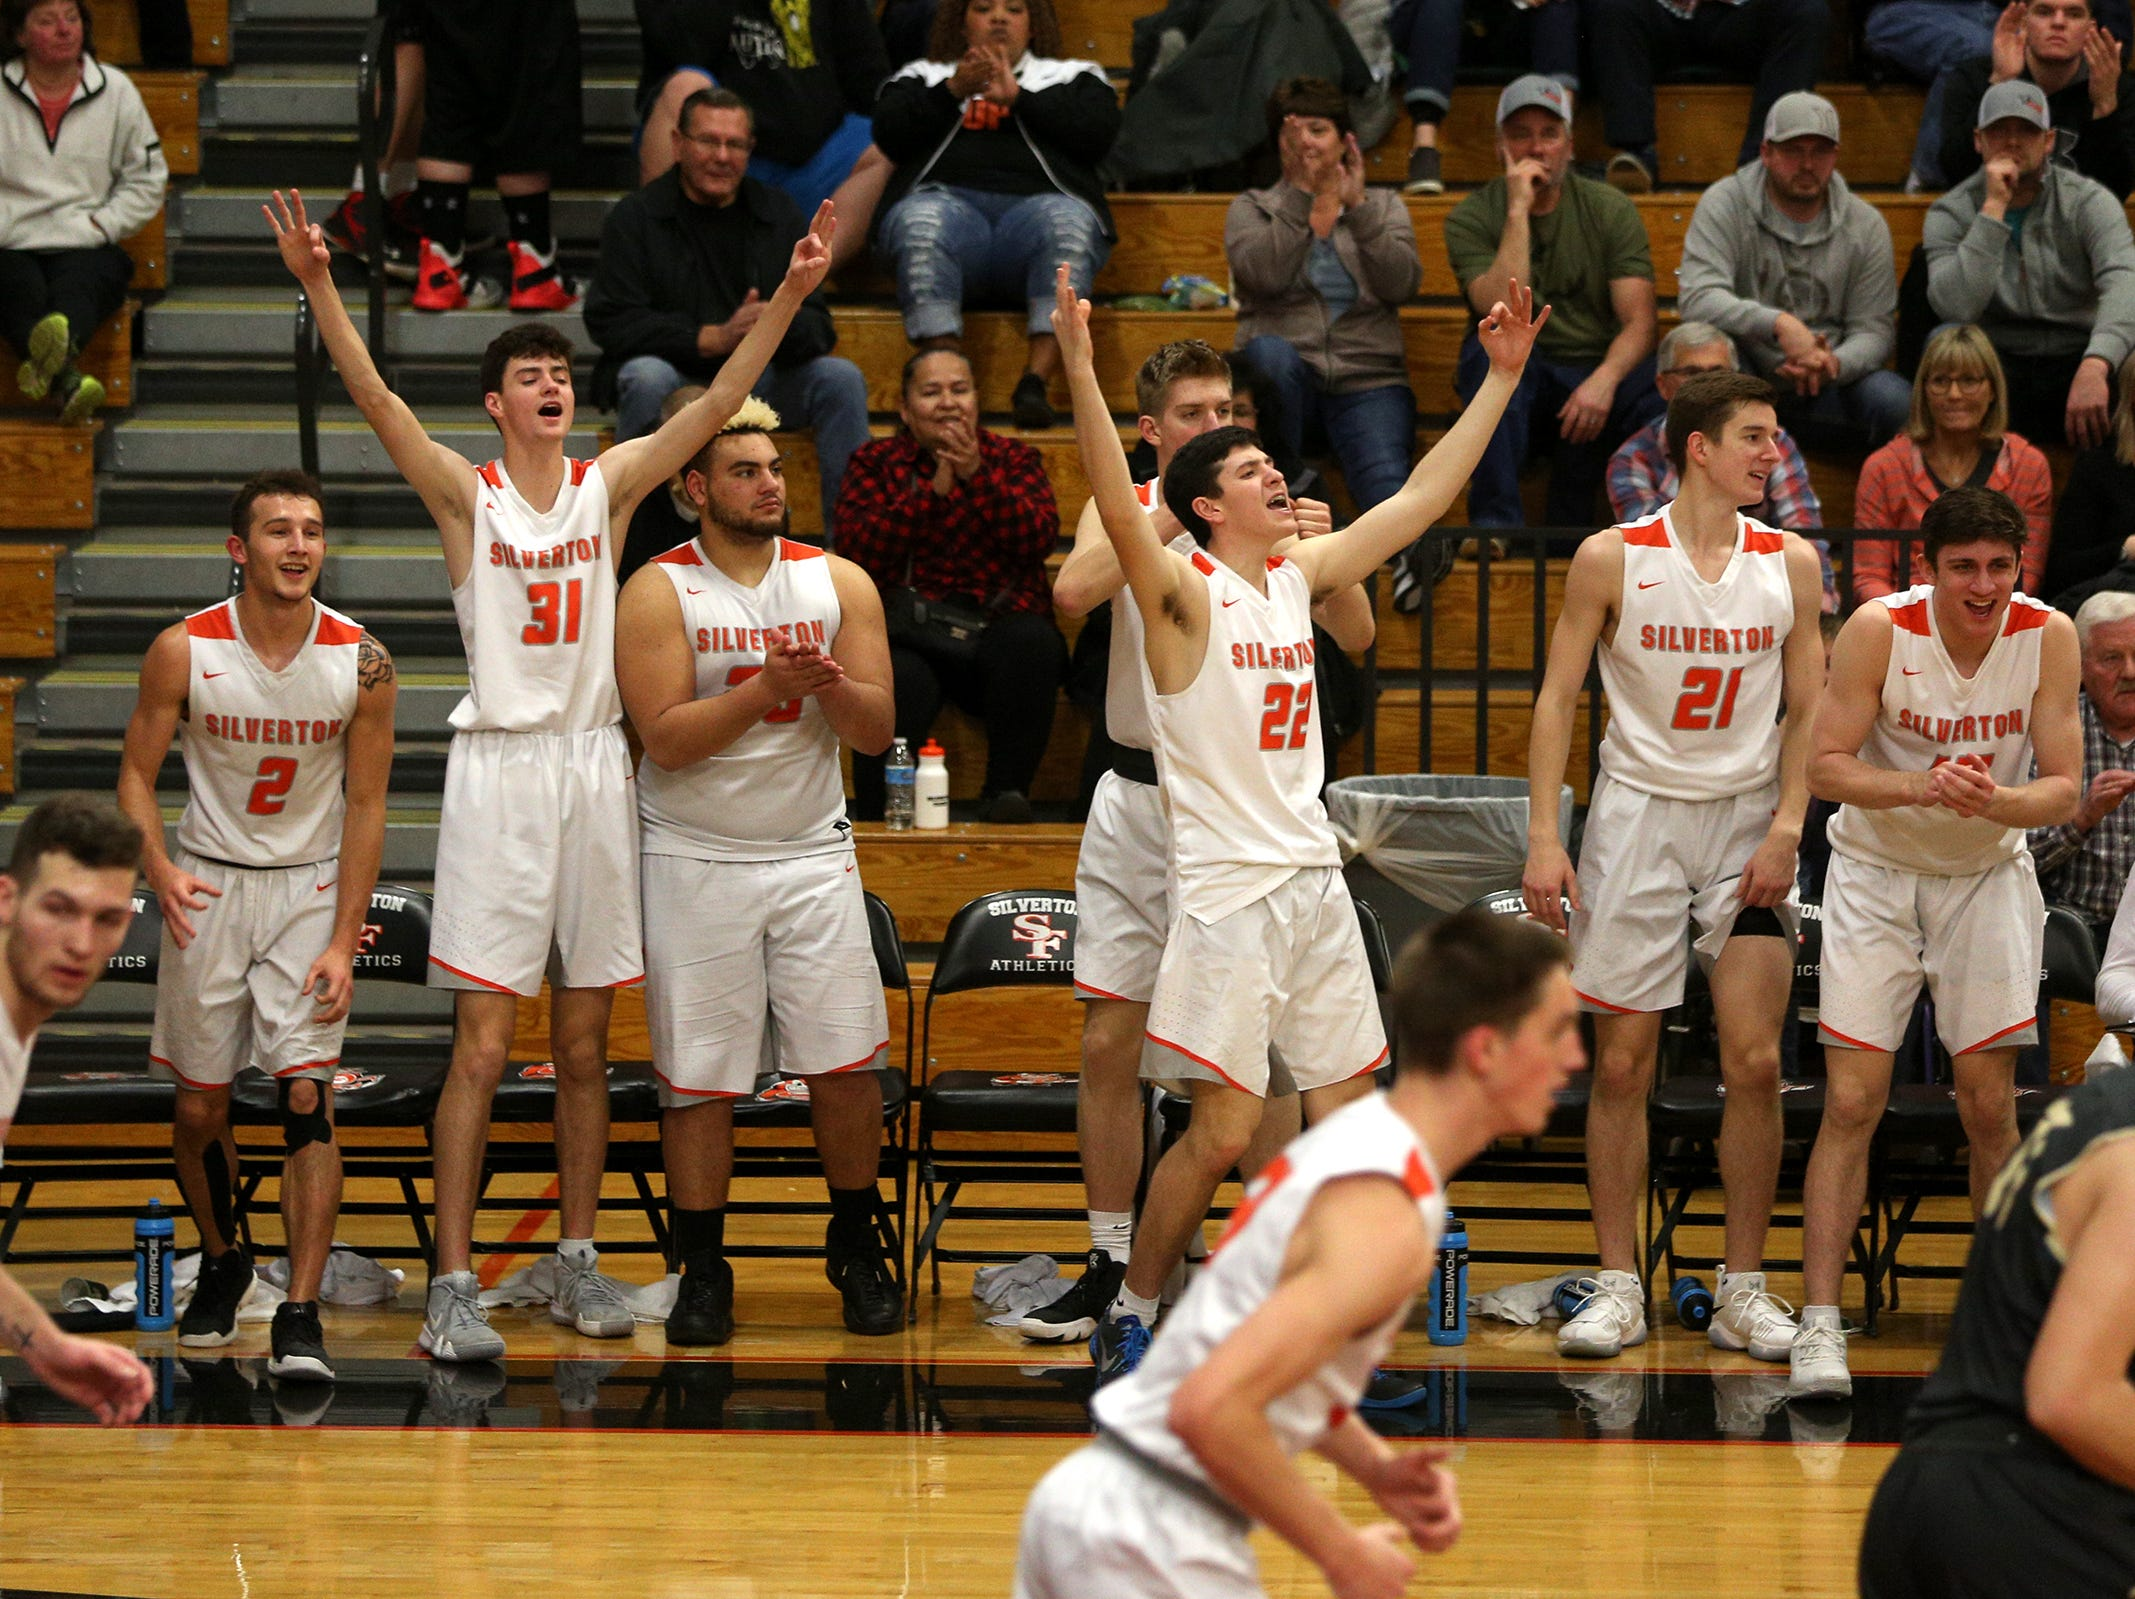 Silverton's bench celebrates during the West Albany vs. Silverton High School boys basketball game in Silverton on Friday, Jan. 25, 2019.